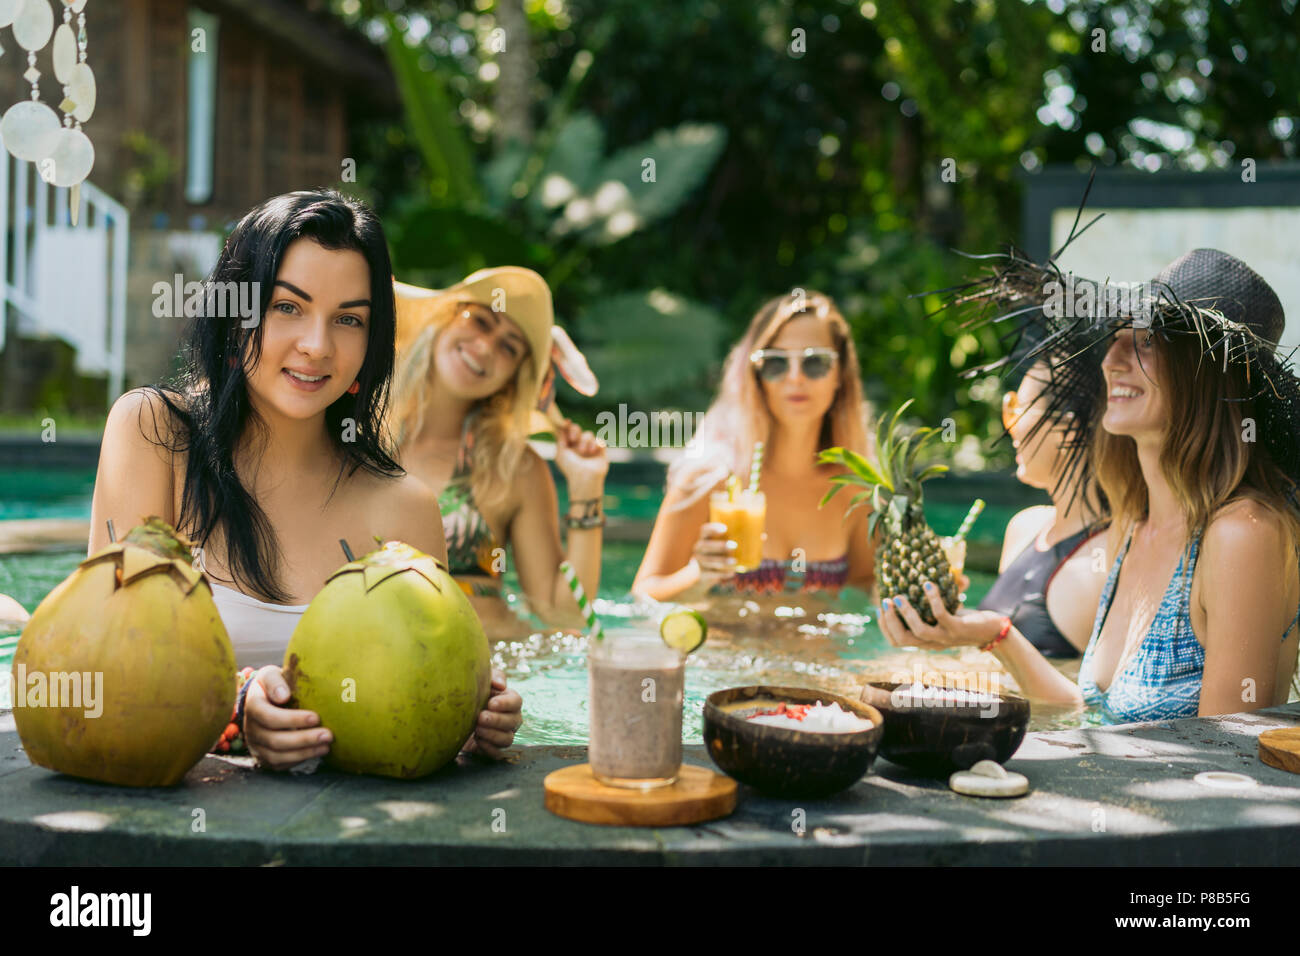 young women in swimwear drinking tropical cocktails and relaxing in swimming pool - Stock Image